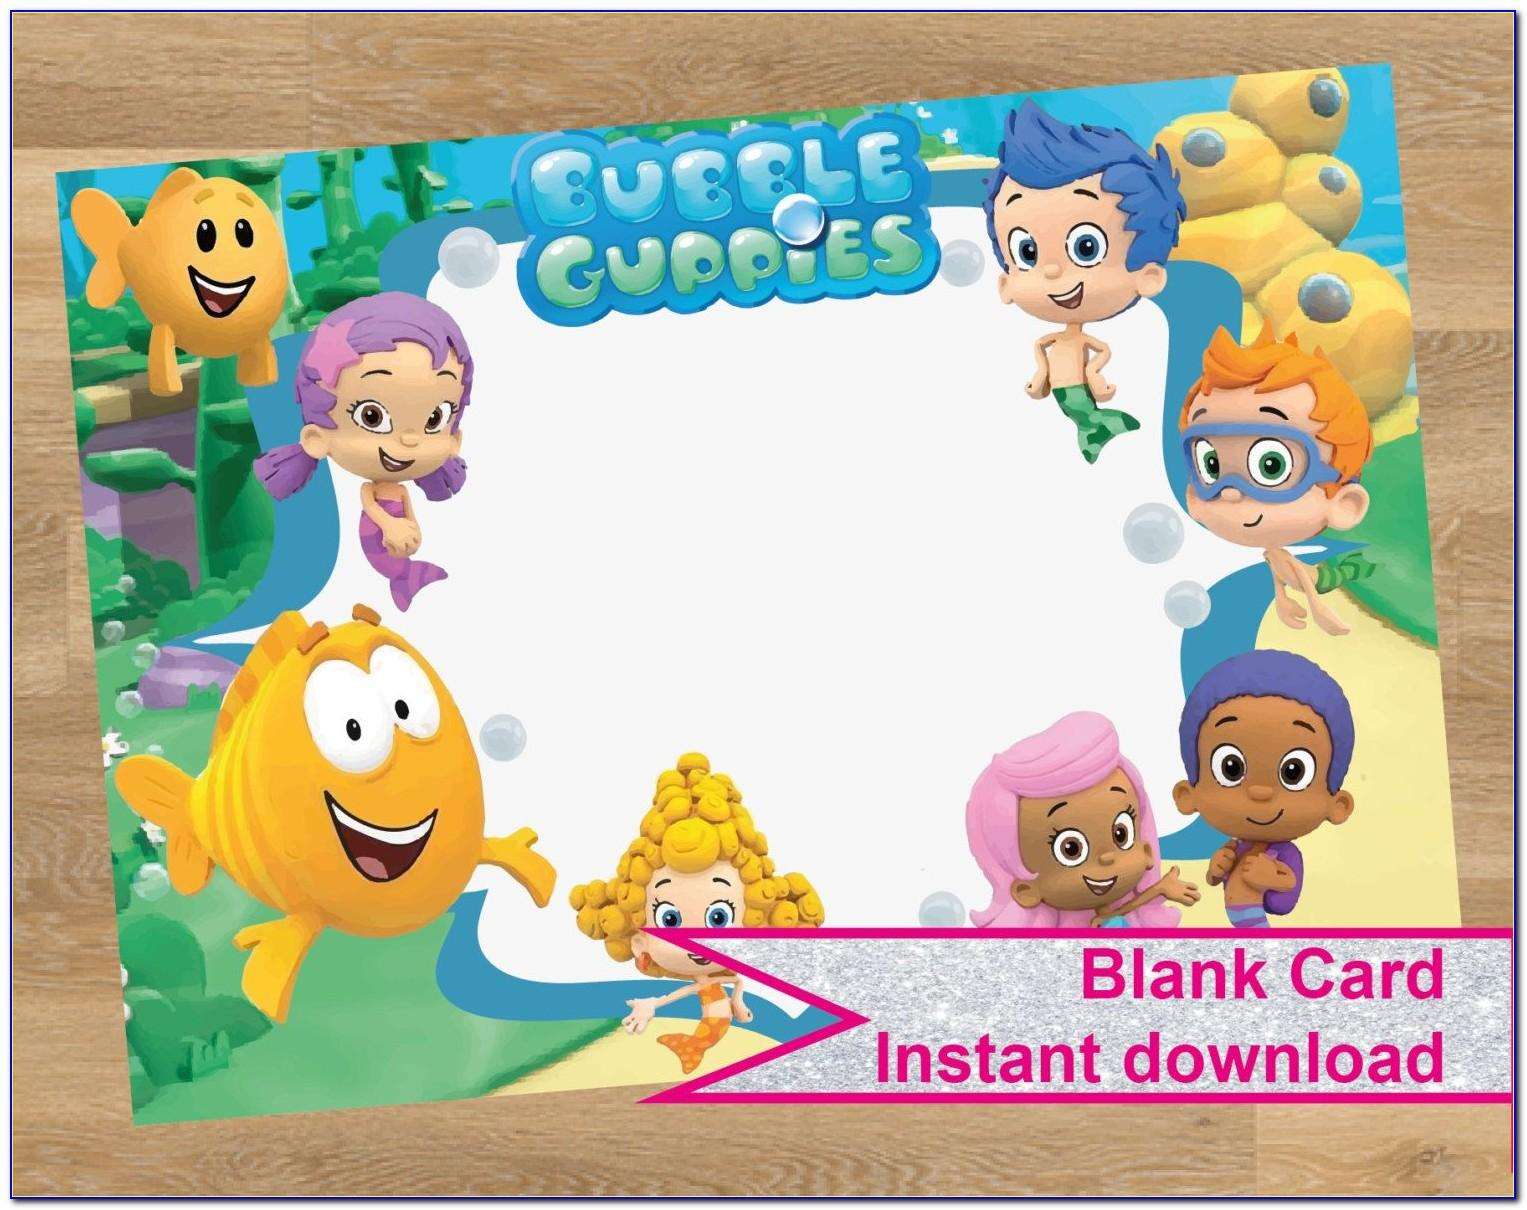 Bubble Guppies Birthday Invitation Template  vincegray5